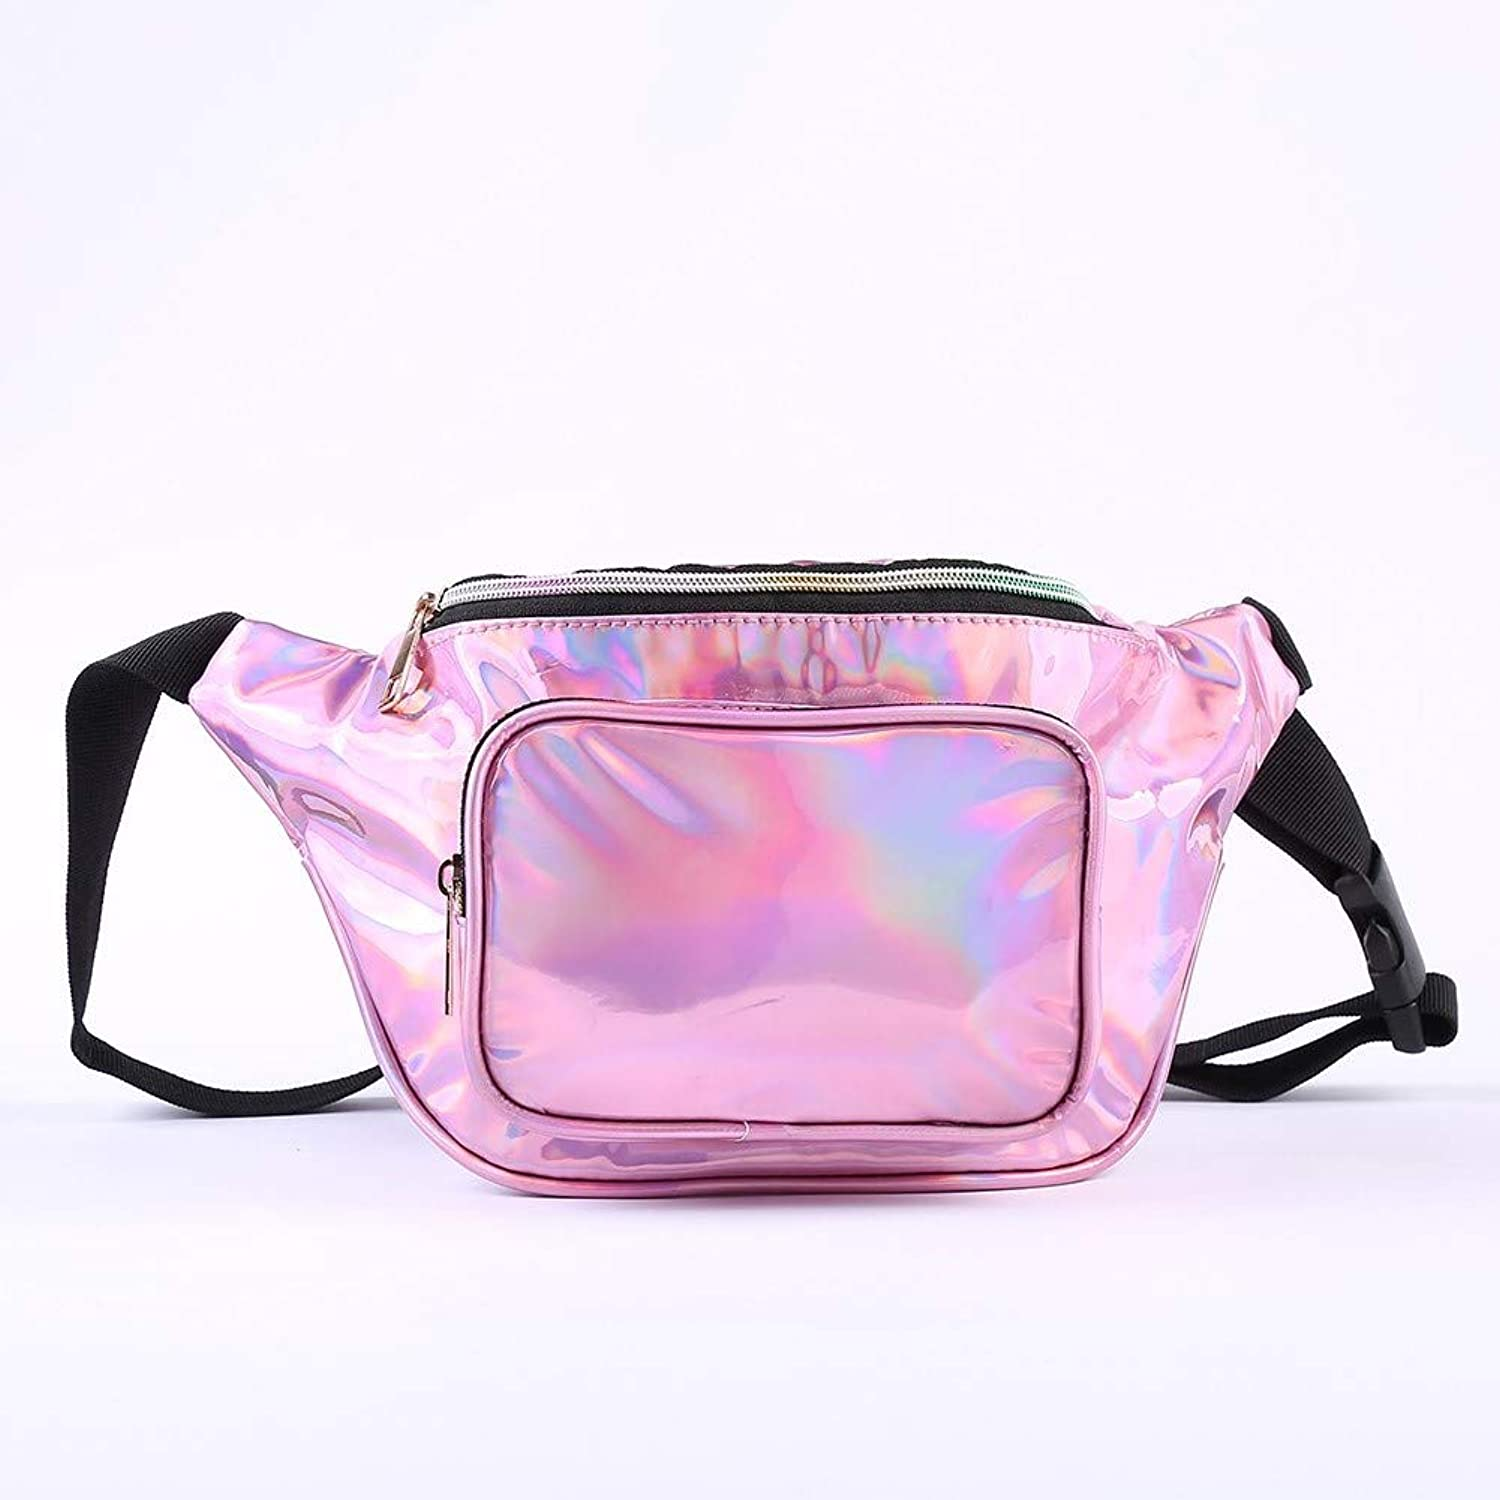 Women Fanny Pack Holographic Waist Pack Festival Bum Bag-Fanny Pack with Adjustable Belt for Travel,Cycling,and Leisure (pink Pink)